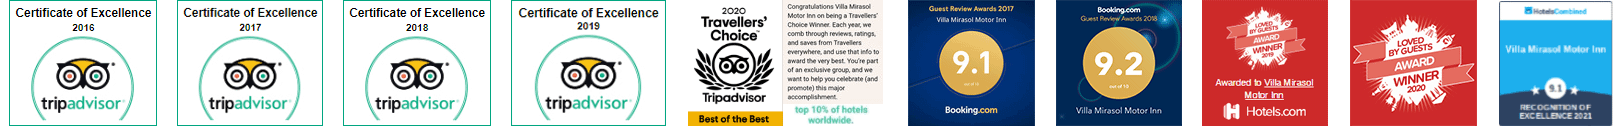 Villa Mirasol Motor Inn Awards - Motel in Bundaberg